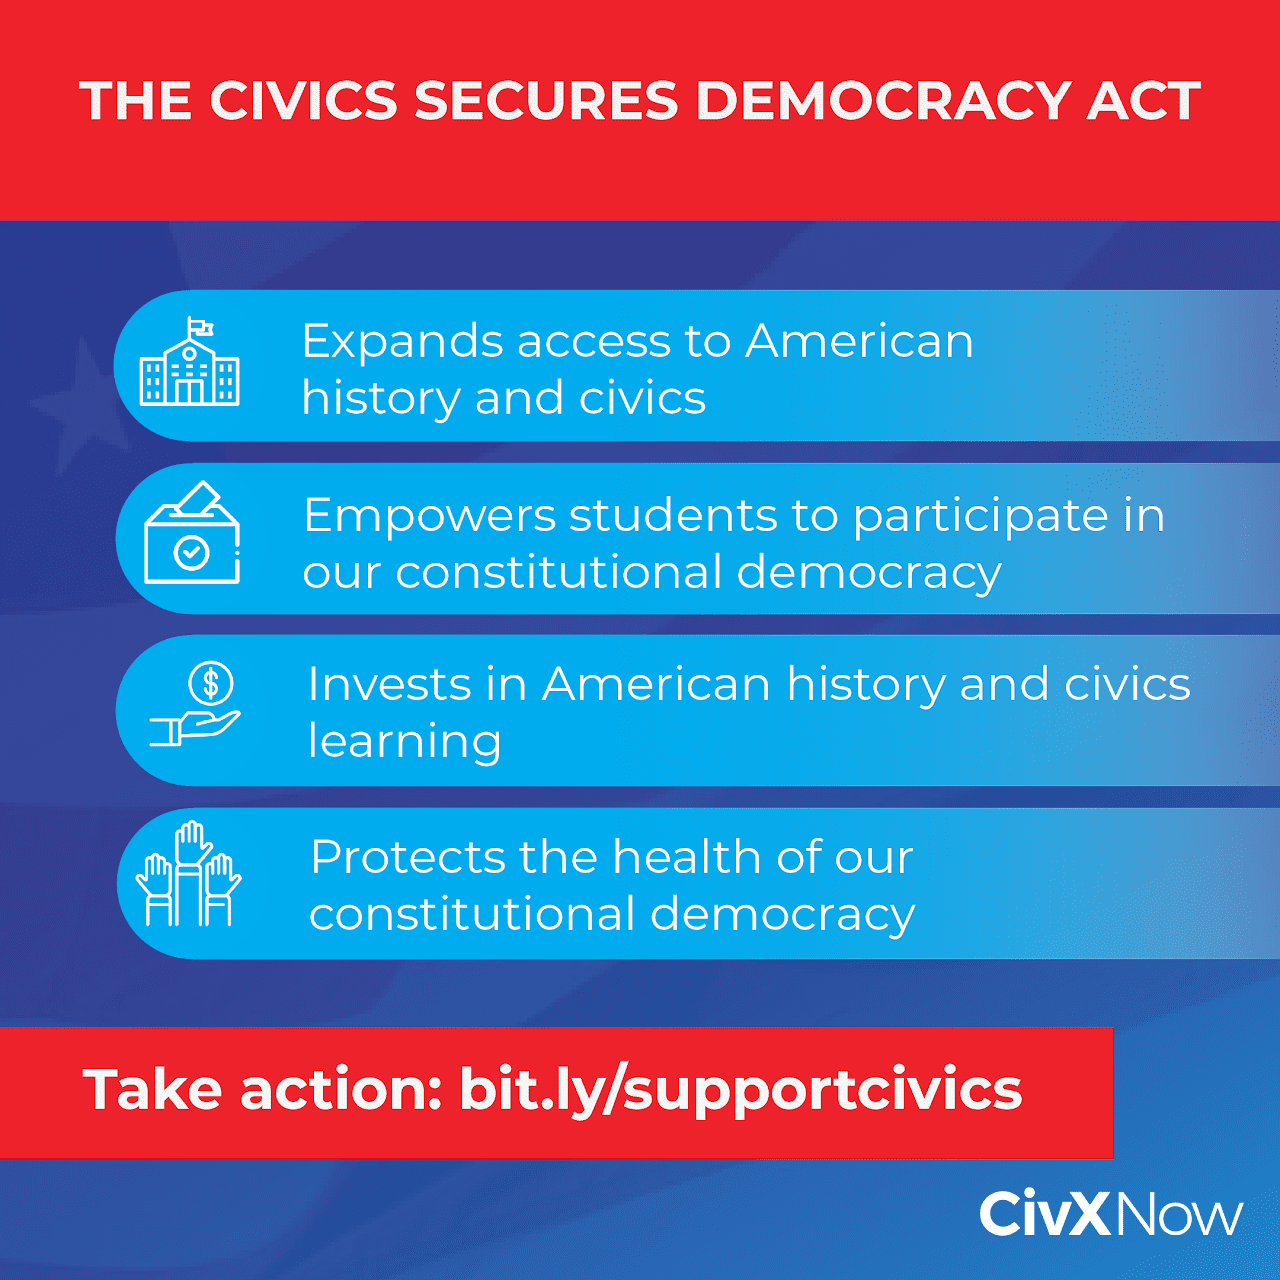 Outline of the civics secures democracy act from CivXNow